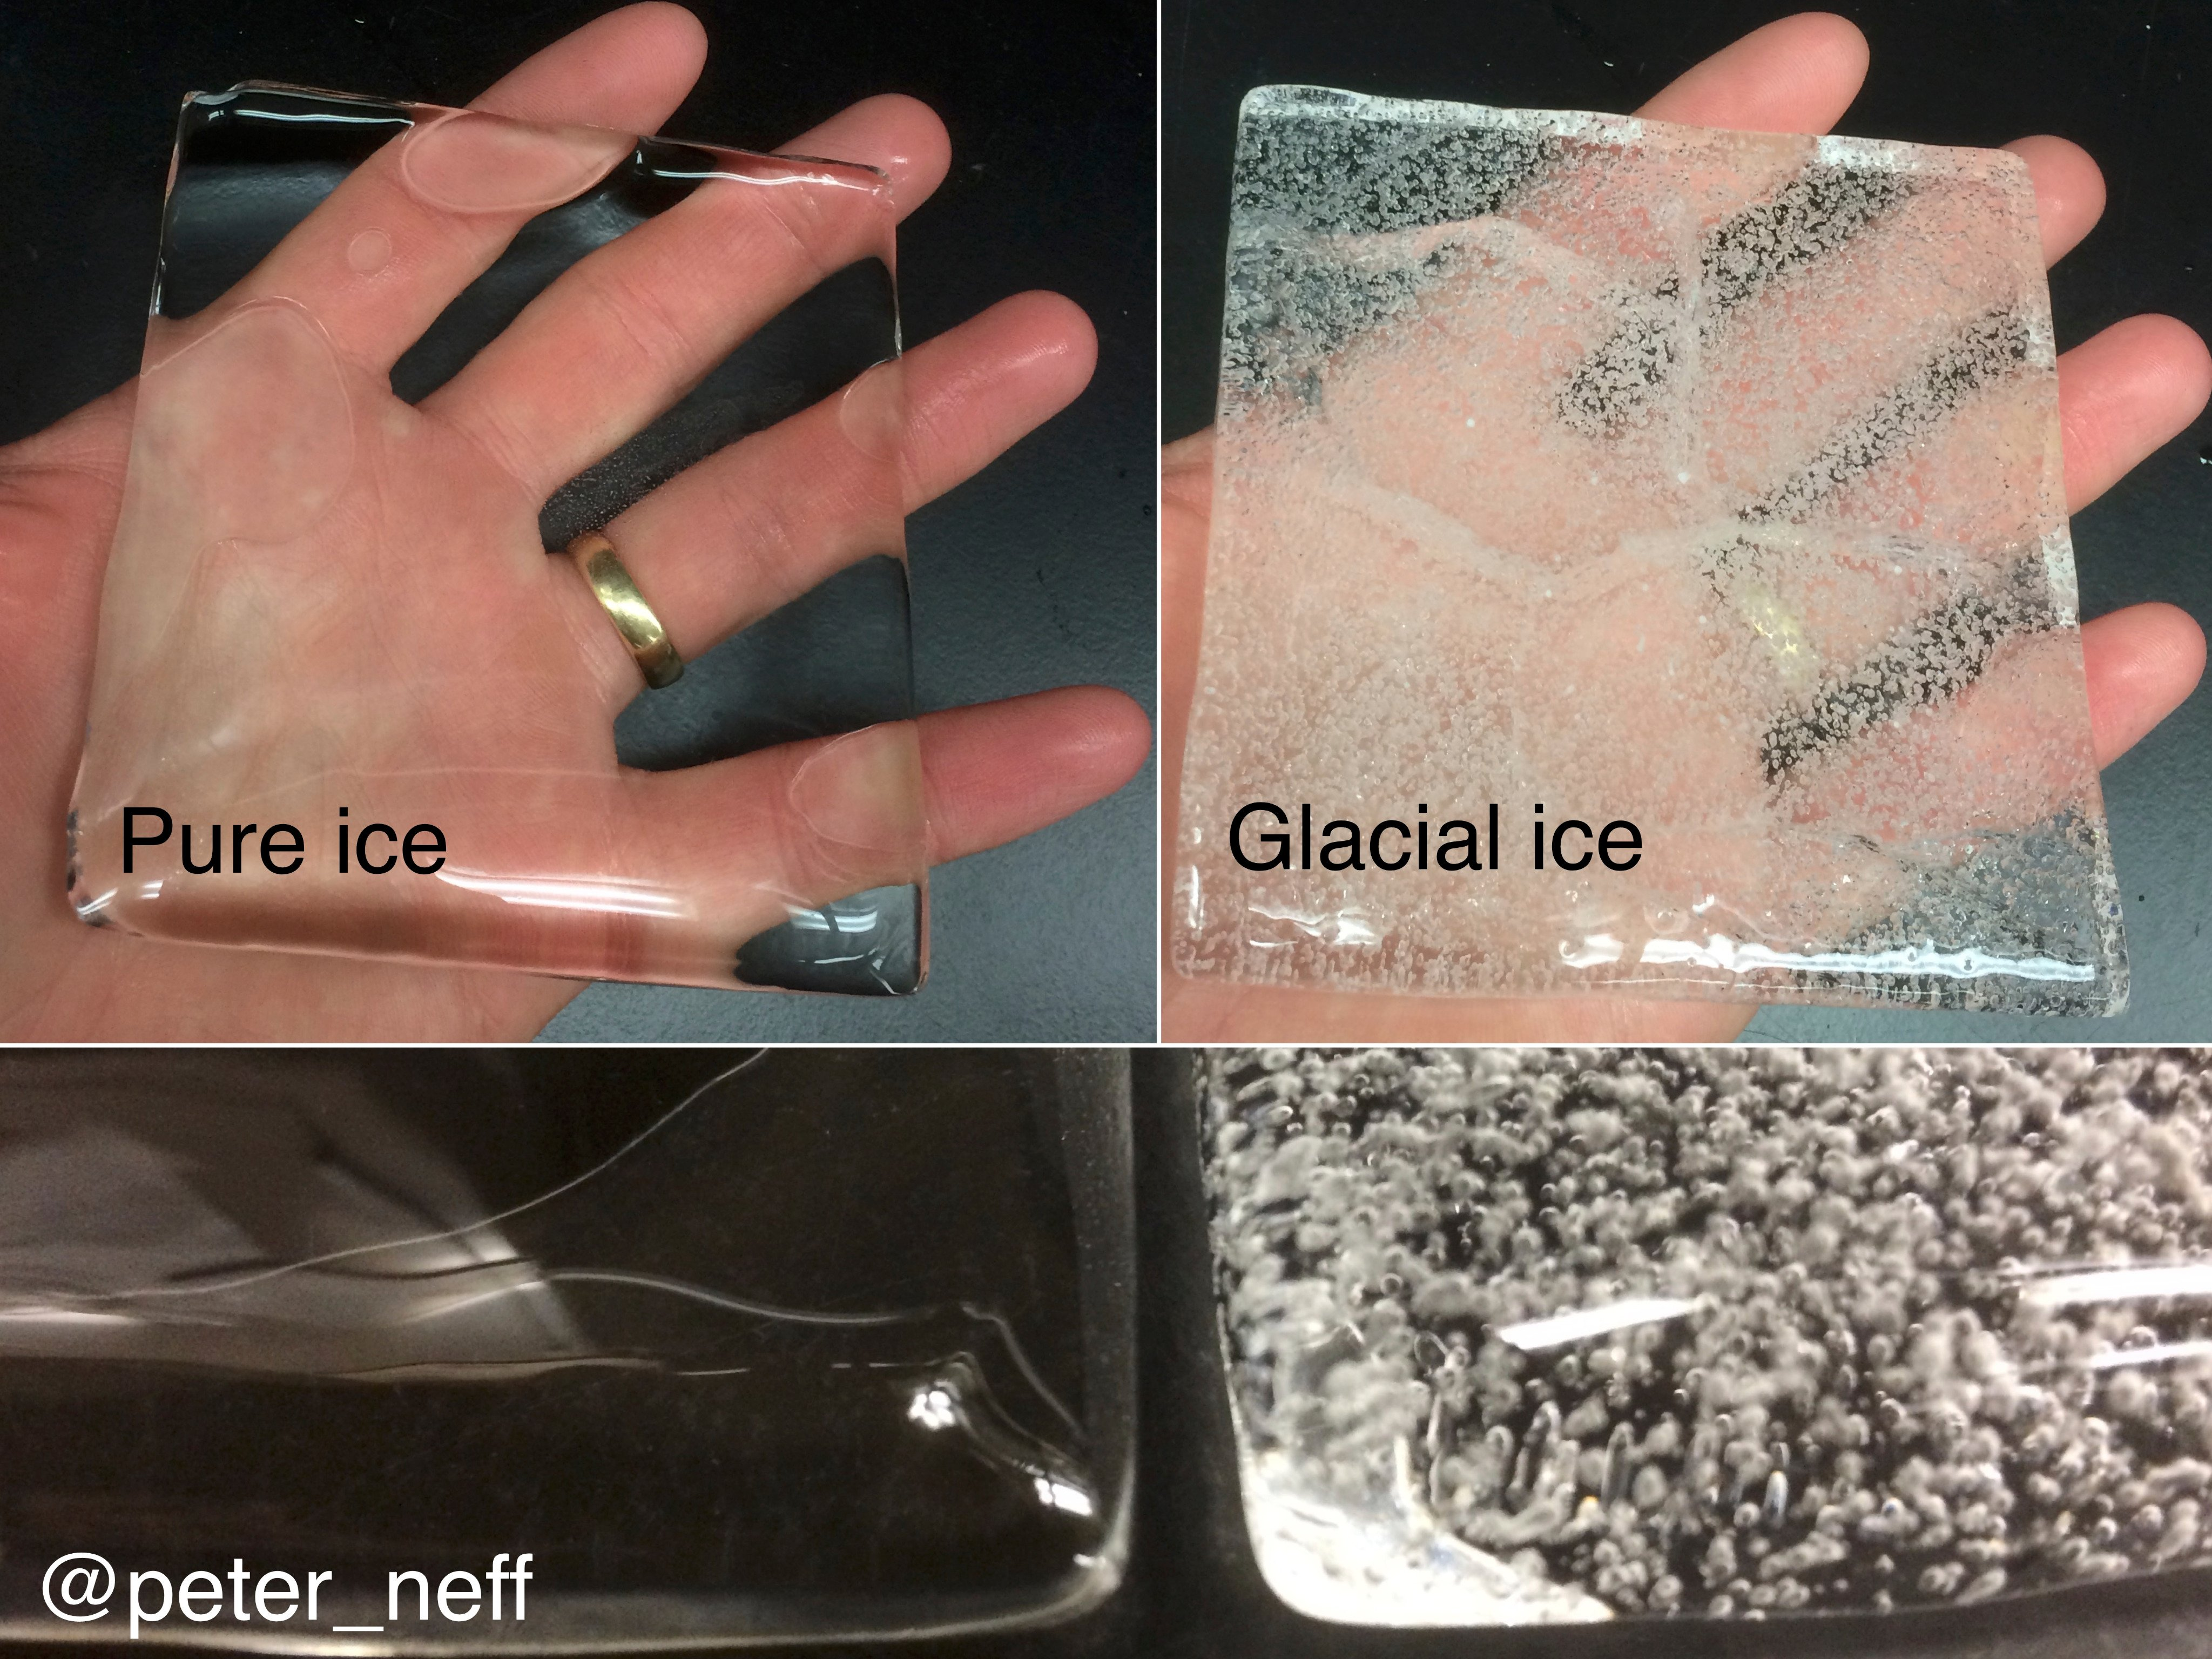 A comparison of pure ice and the ice taken from the glacier